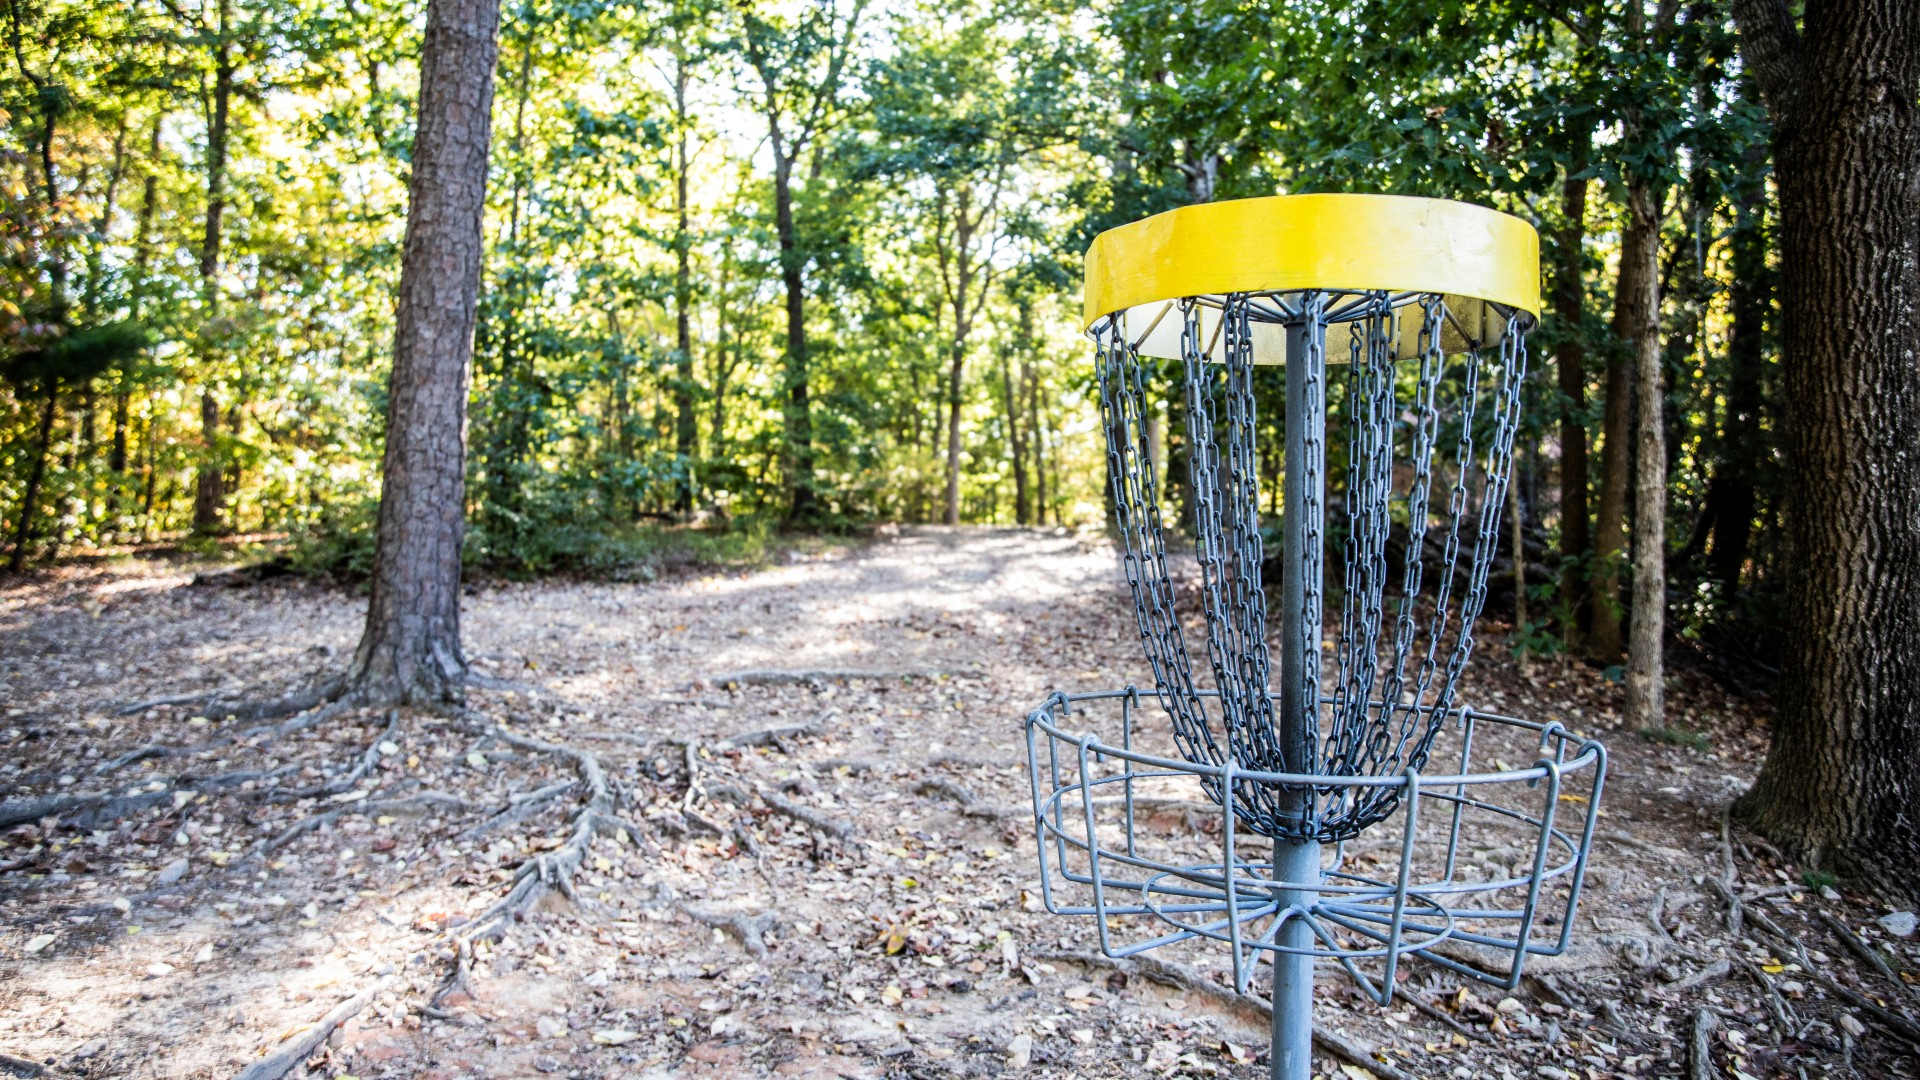 Part of the Cedar Hills Park disc golf course